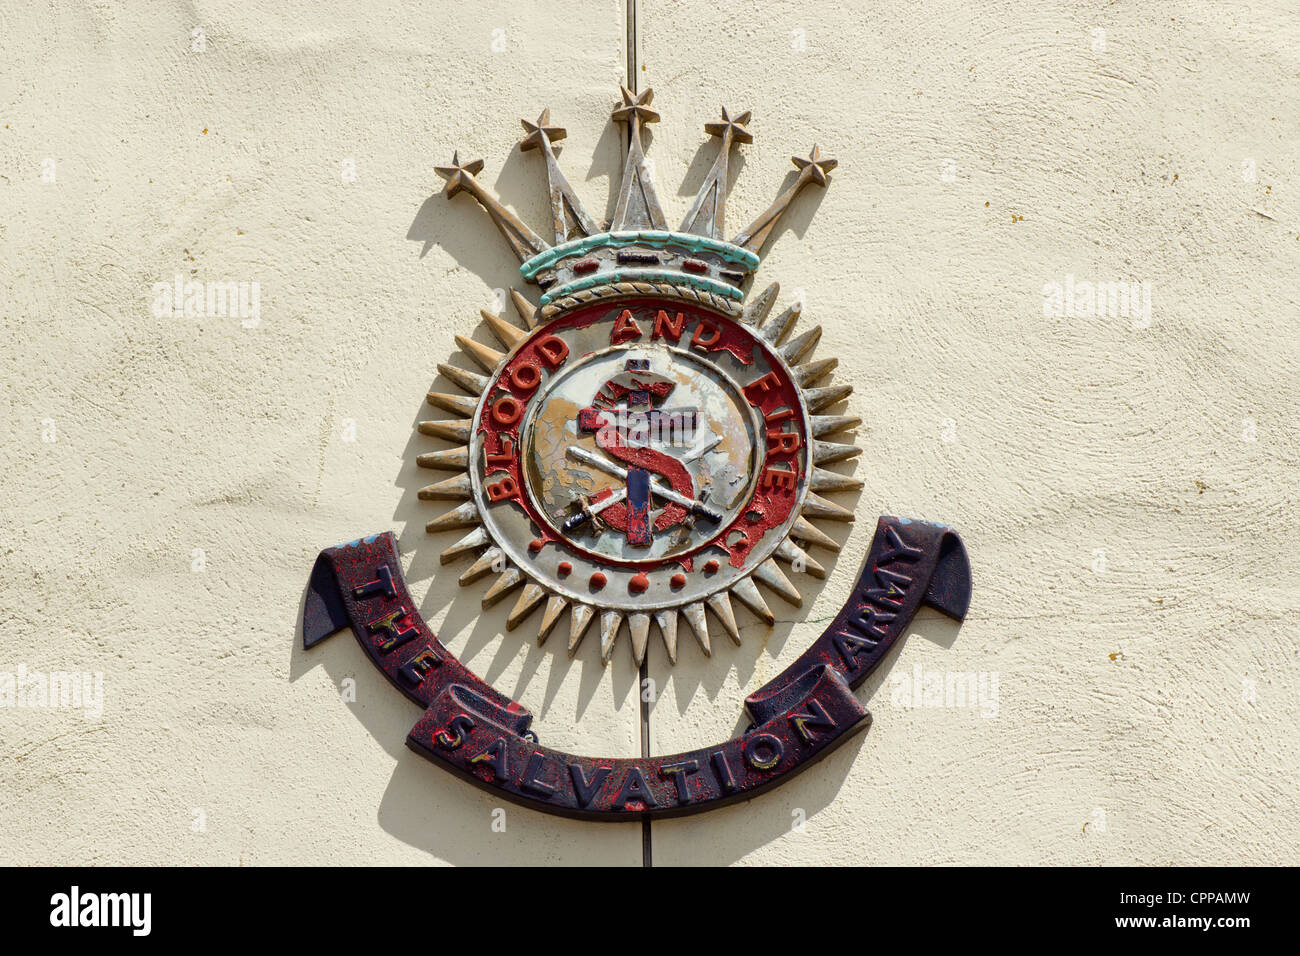 The salvation army weathered emblem symbol and motto blood and fire the salvation army weathered emblem symbol and motto blood and fire close up biocorpaavc Choice Image